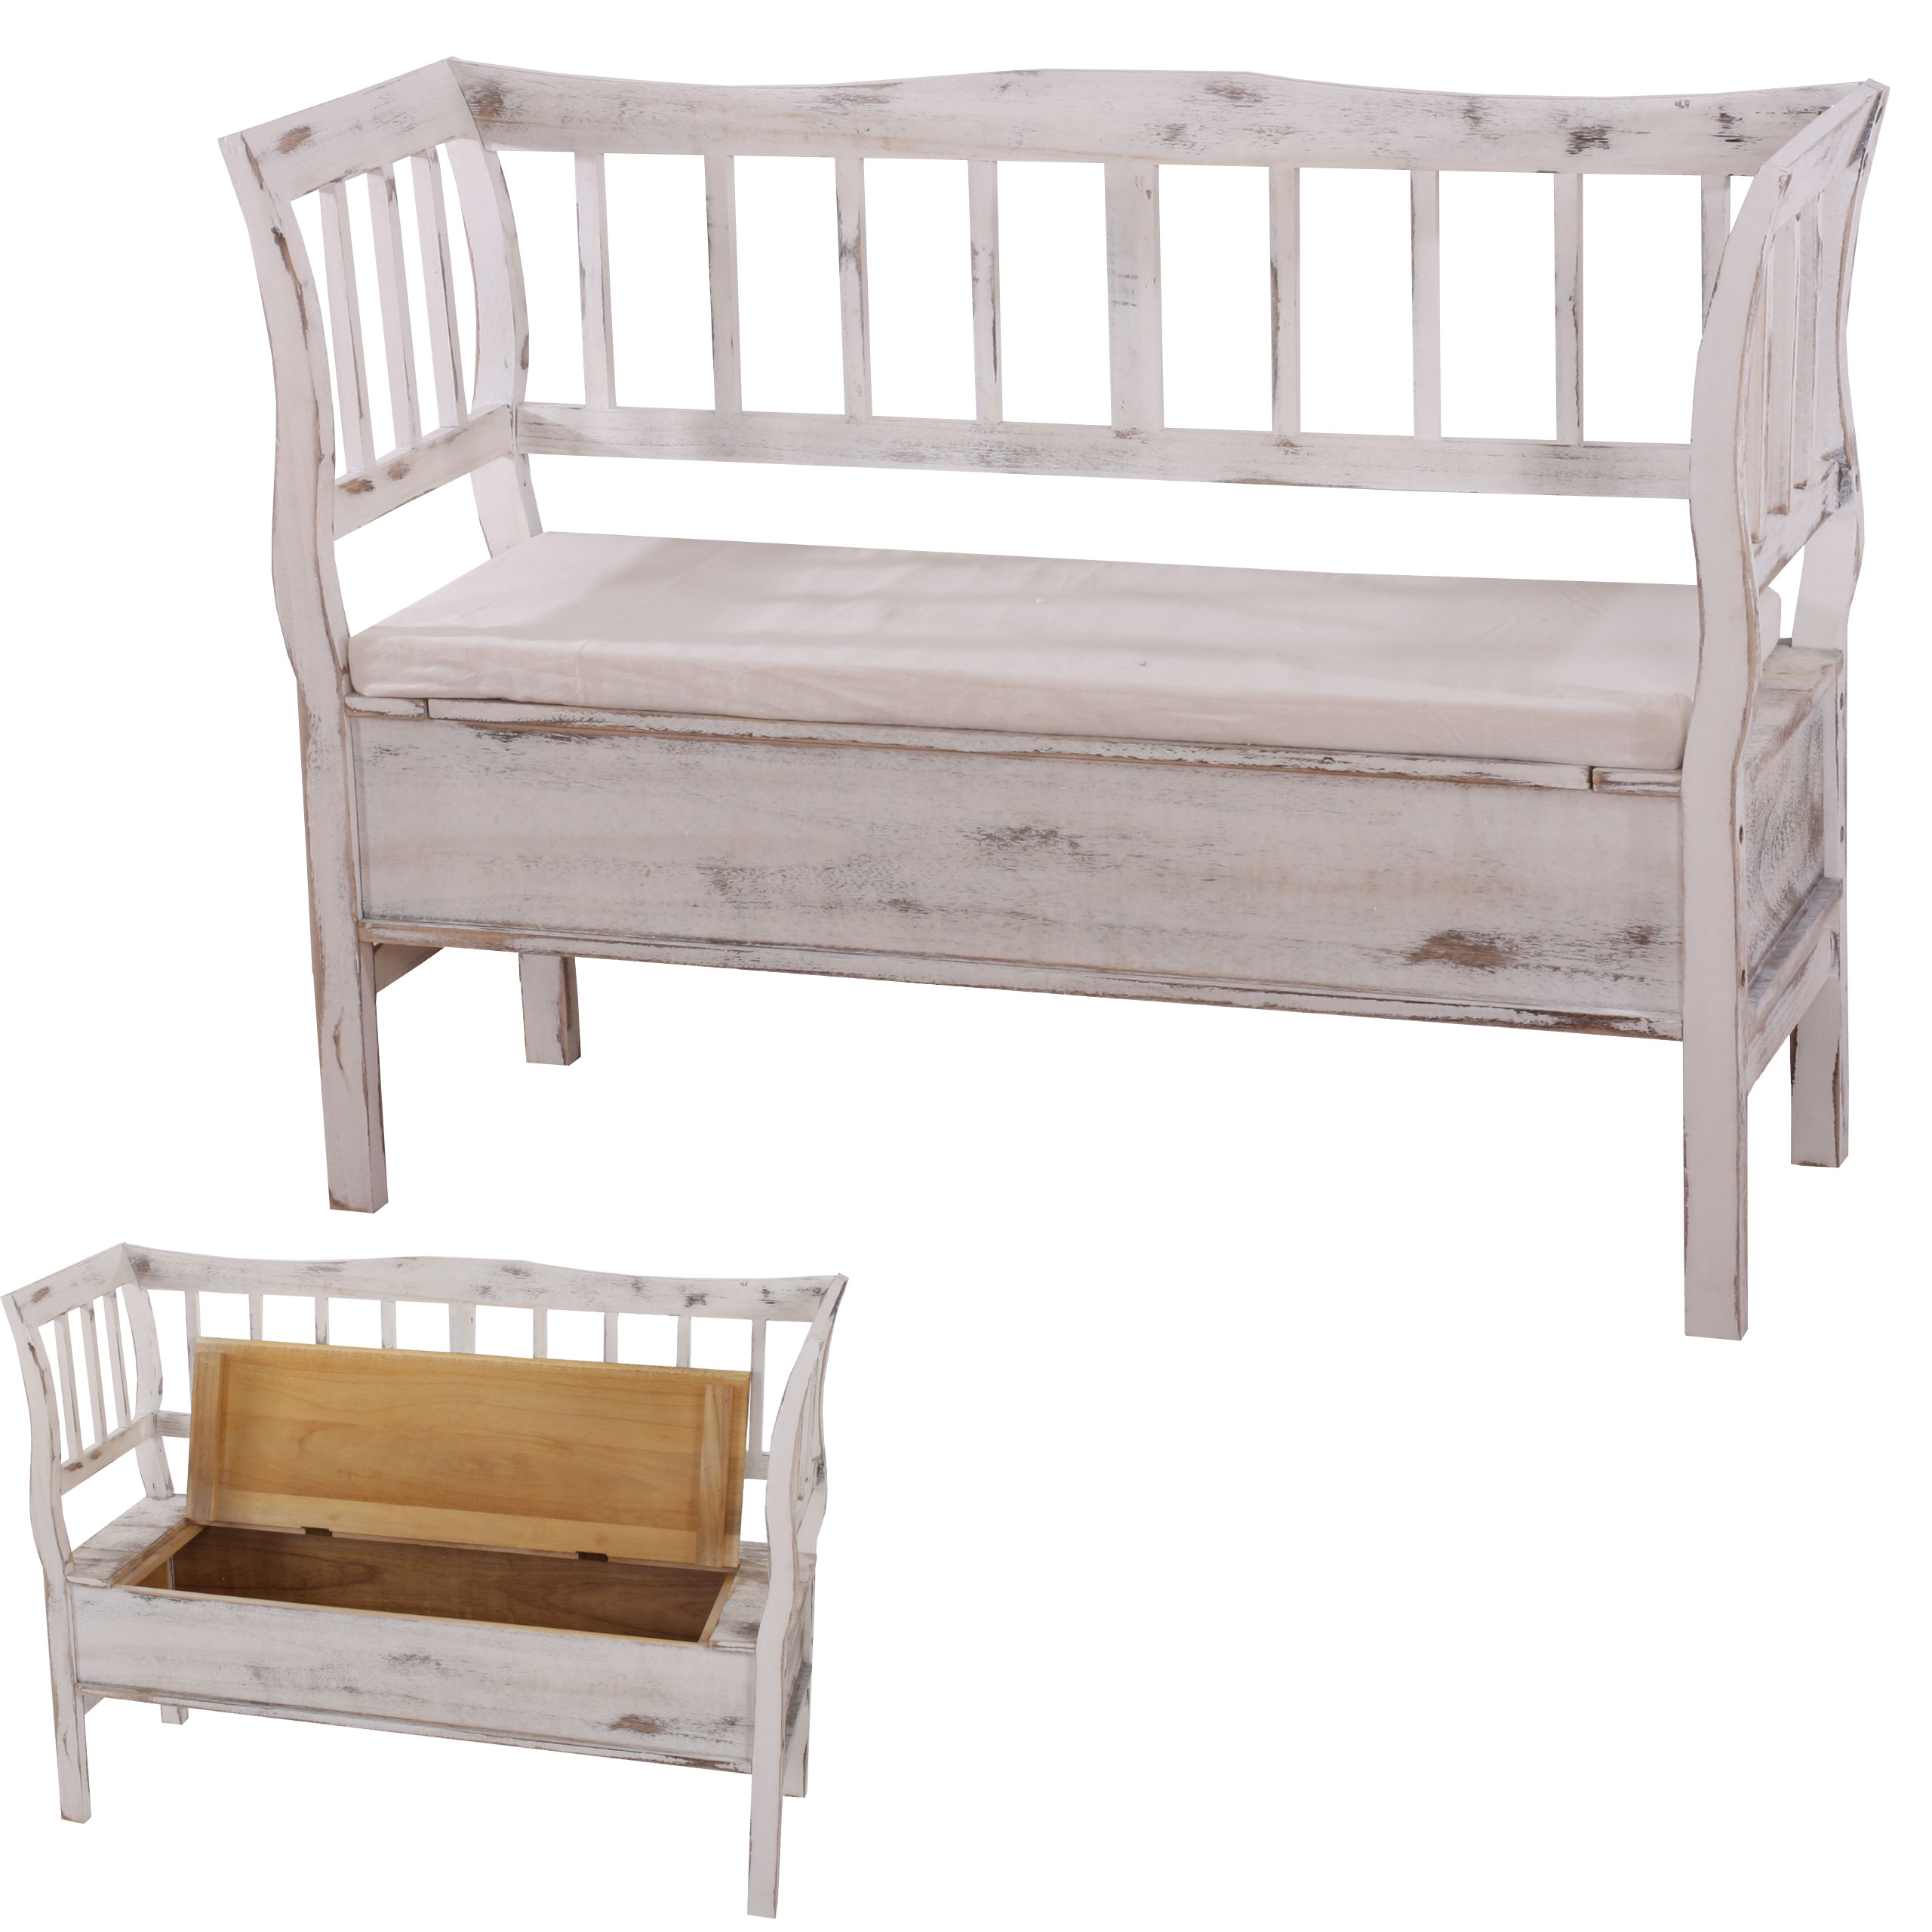 schuhregal sitzbank 45x65x34cm shabby look shabby chic. Black Bedroom Furniture Sets. Home Design Ideas